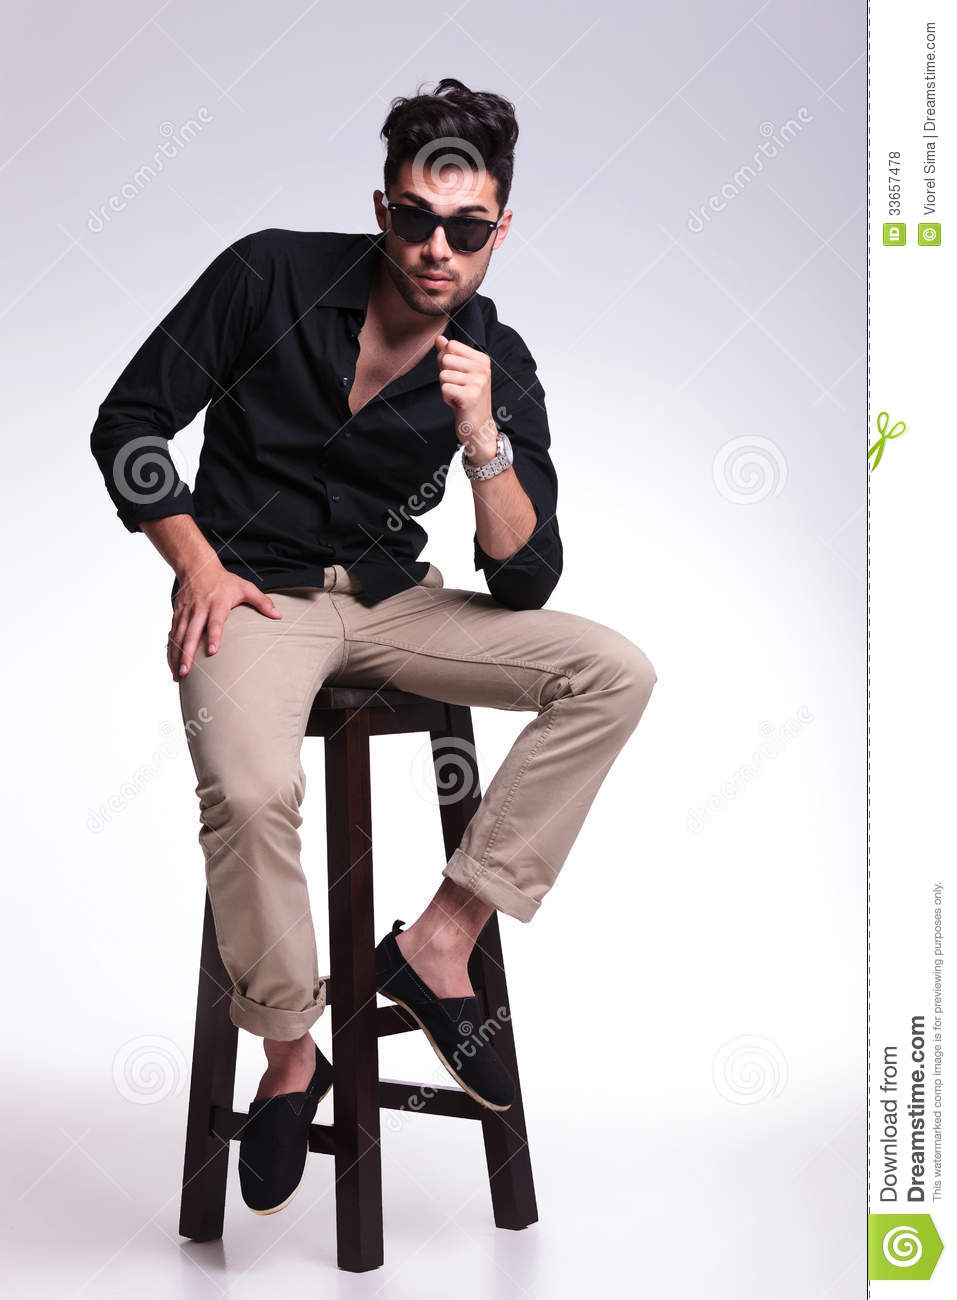 Young Man Posing On A High Chair Stock Photo Image Of